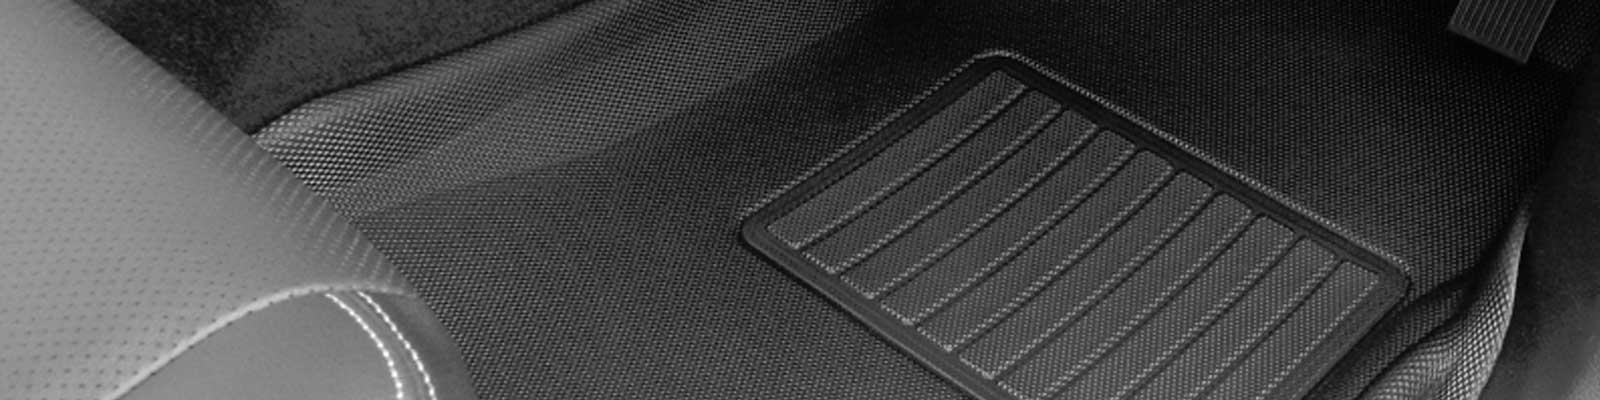 Vehicle Specific Floor Mats & Trays